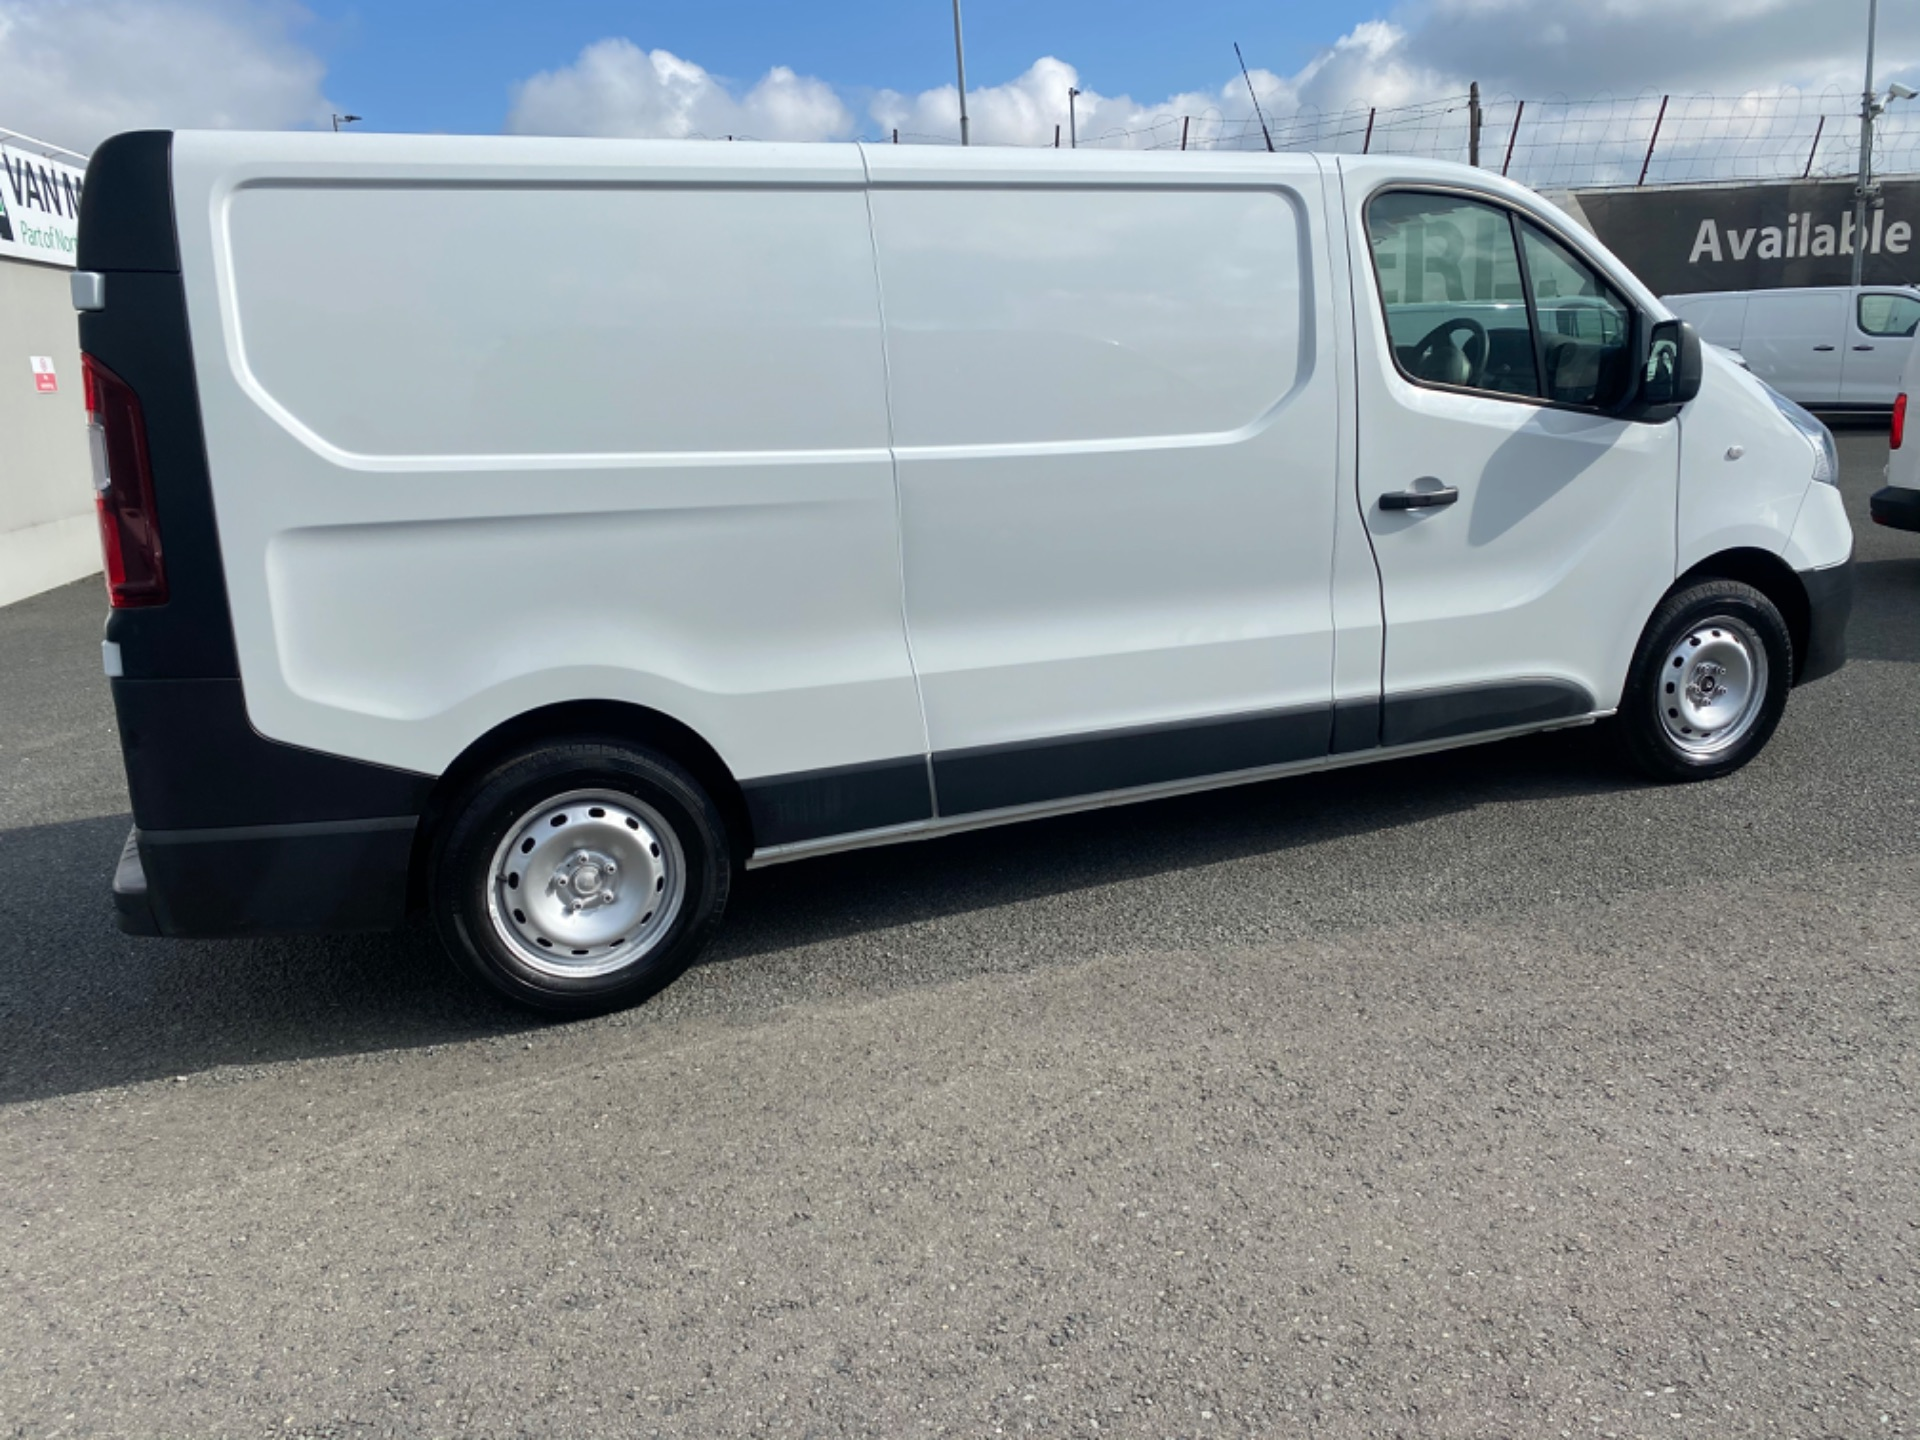 2017 Renault Trafic LL29 DCI 120 Business 3DR (172D23070) Image 8